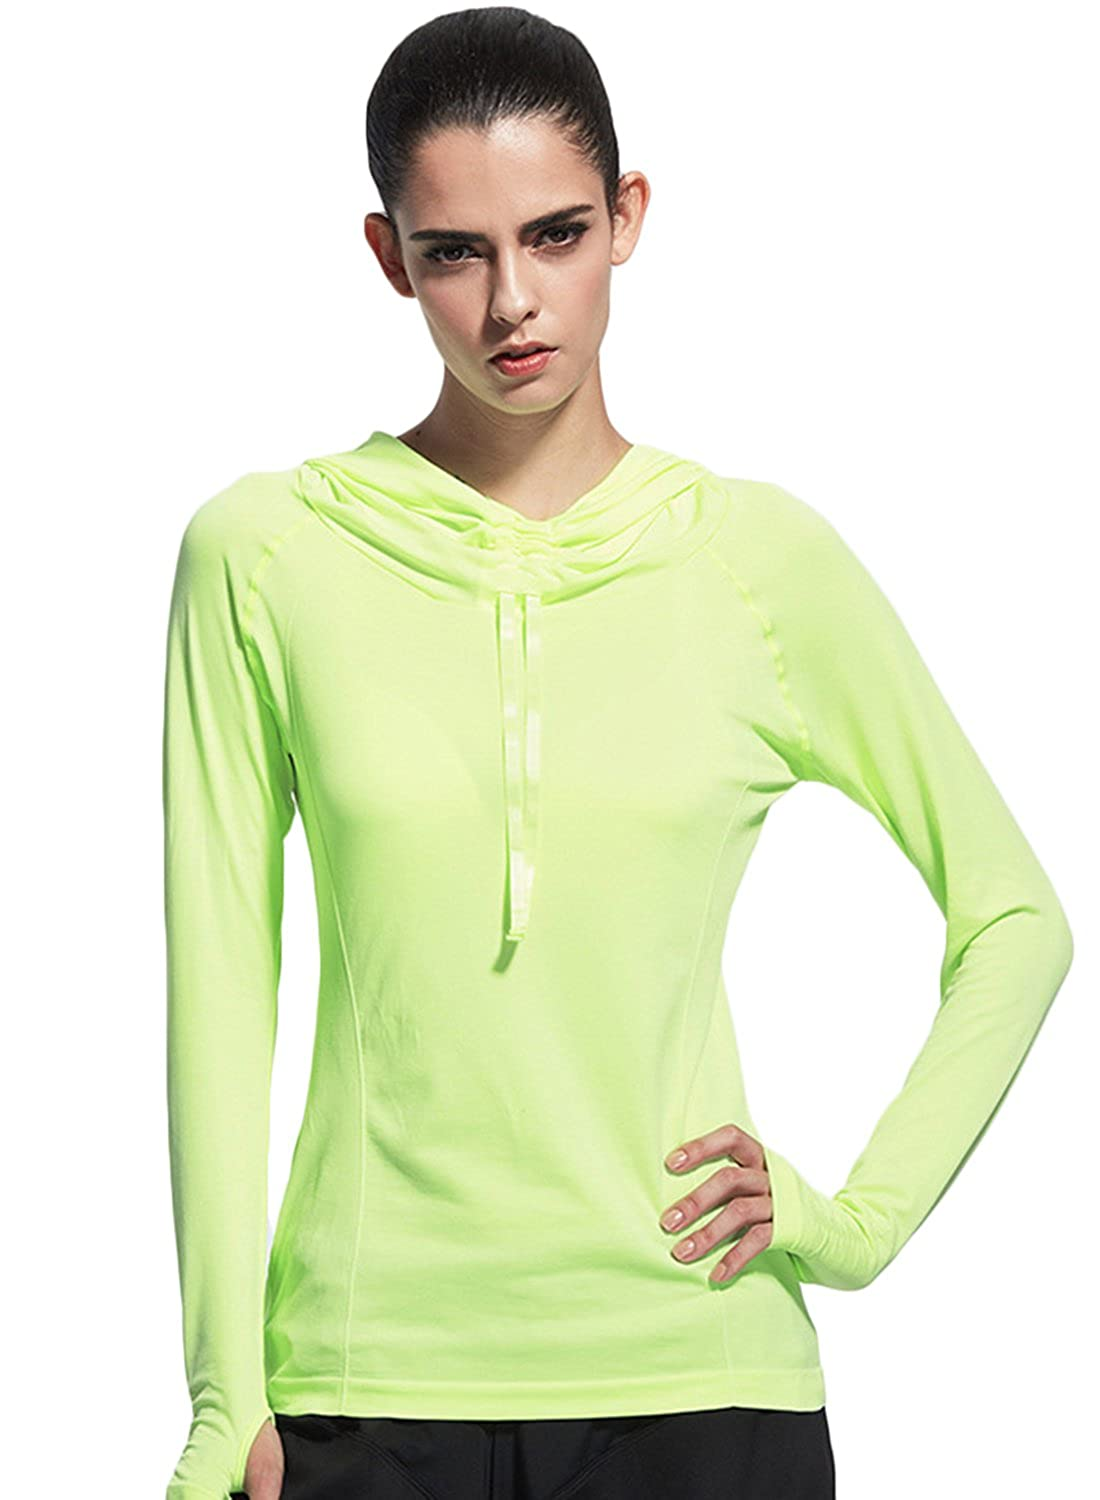 ACHICGIRL Women's Funnel Neck Drawstring Hooded Sports Top with Thumb Hole